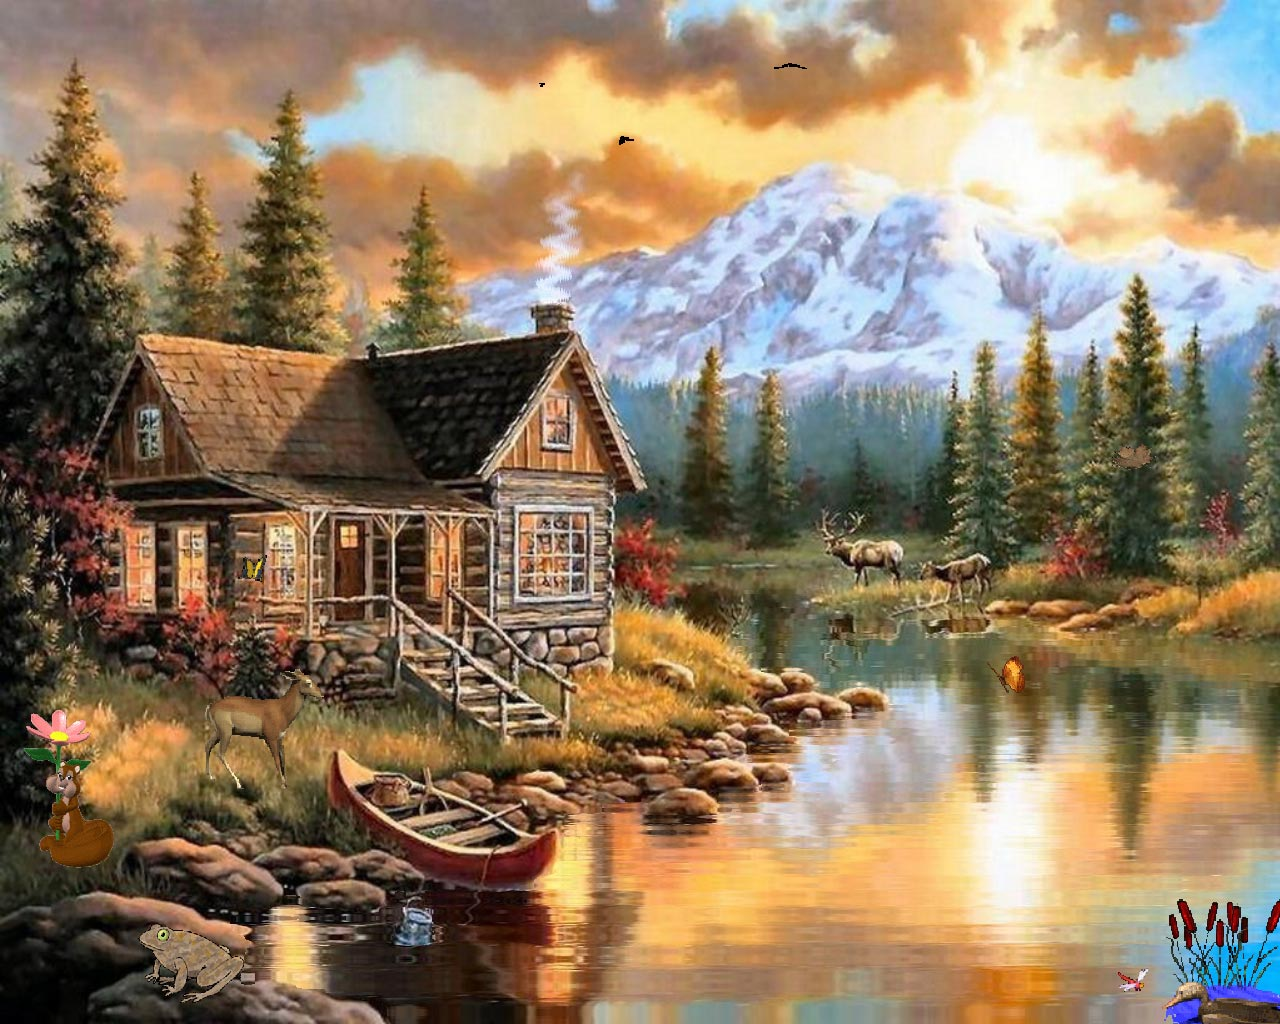 scenery nature wallpapers quality natural sceneries painting background landscape scenes paradise paintings cabin paint mountain screensavers screen desktop screensaver hd